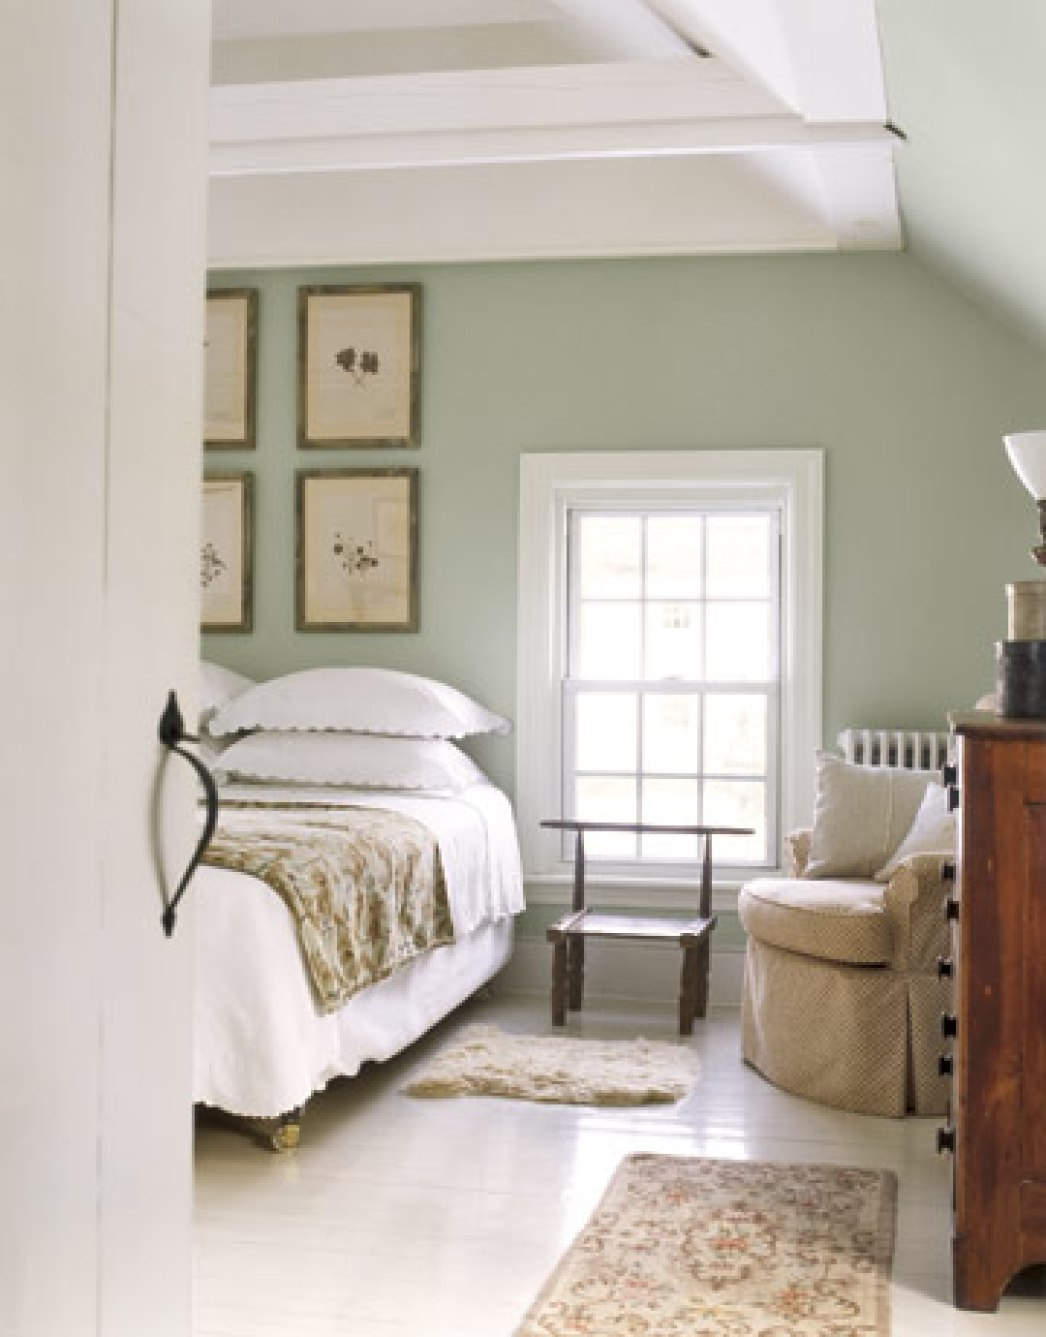 25 Simple Farmhouse Bedroom Design Ideas : farmhouse Master Bedroom from www.dwellingdecor.com size 1046 x 1337 jpeg 133kB